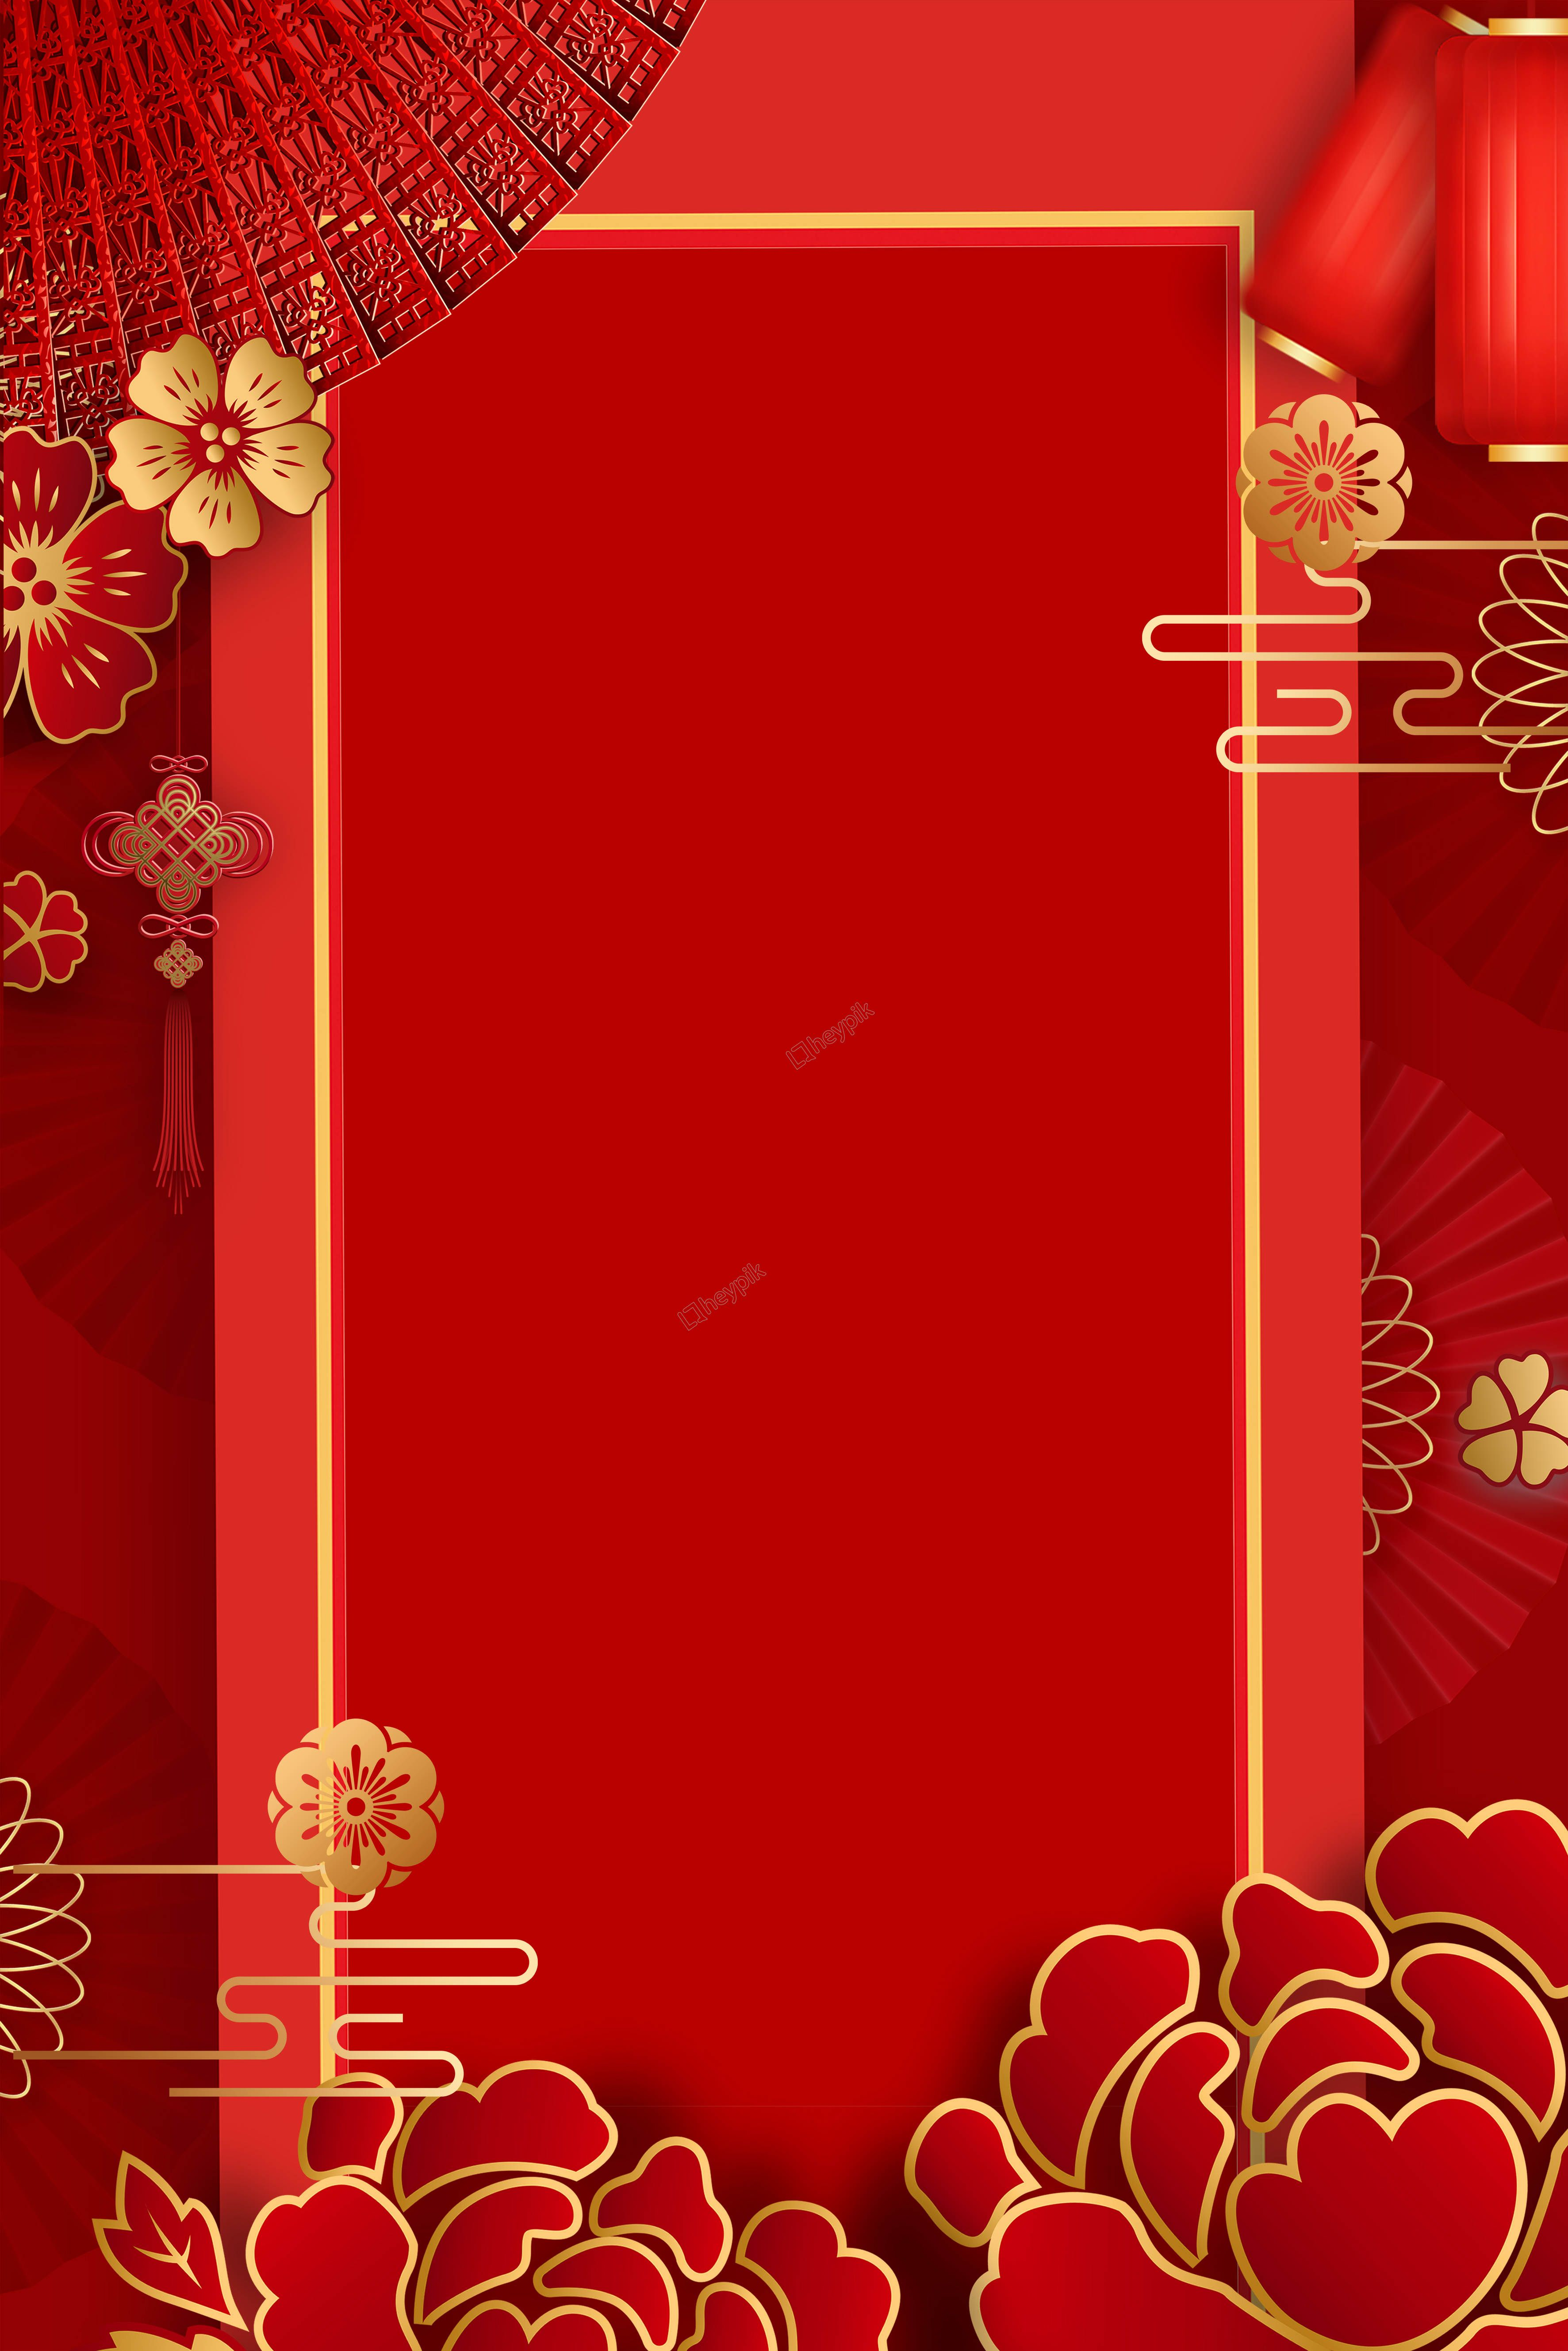 New year festive red flowers poster background Flower